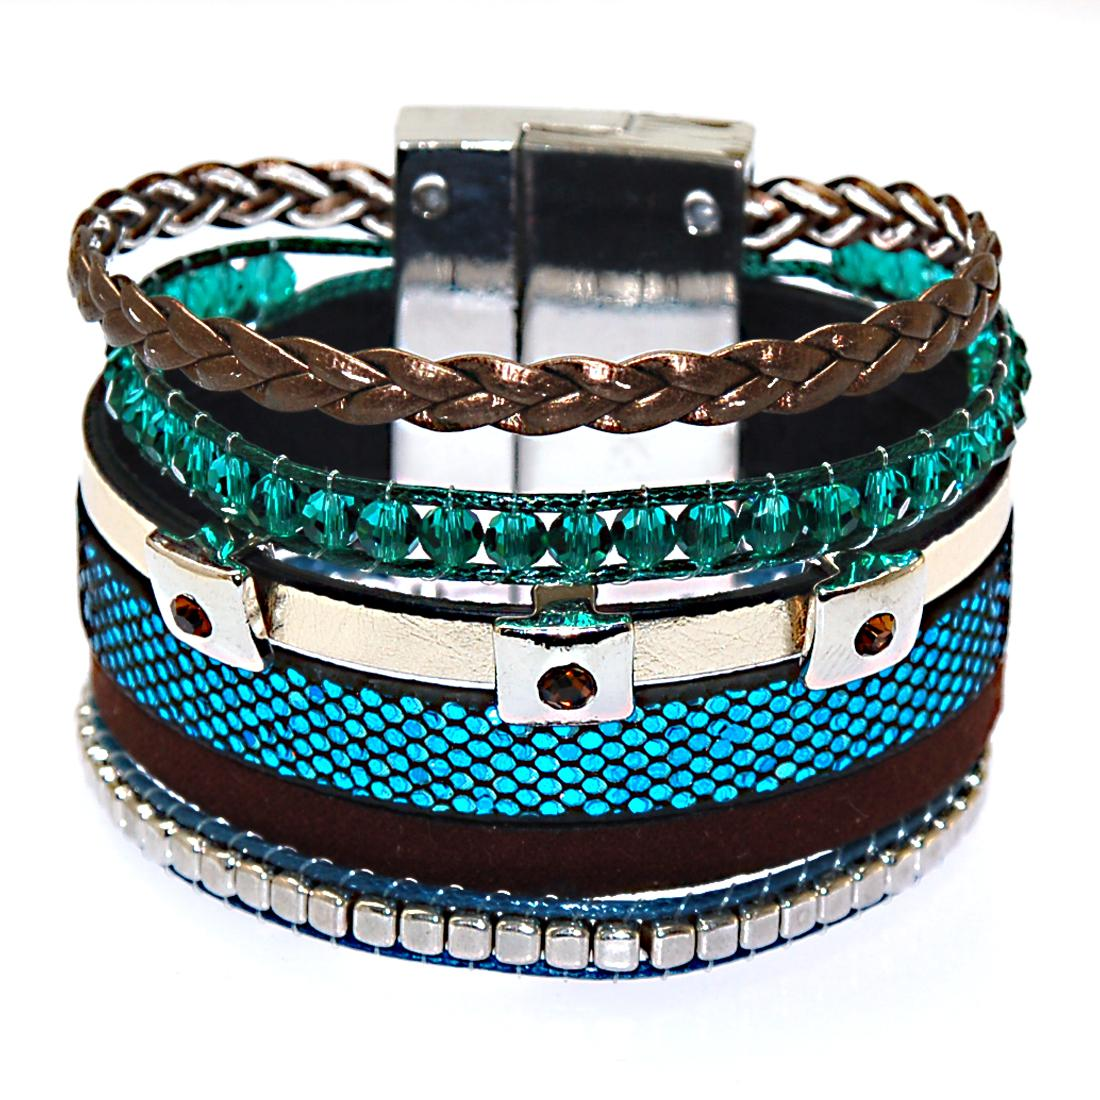 Newest Arrival Multilayer Brazilian Style Colorful Leather Magnetic Wrap Bracelet with crystal